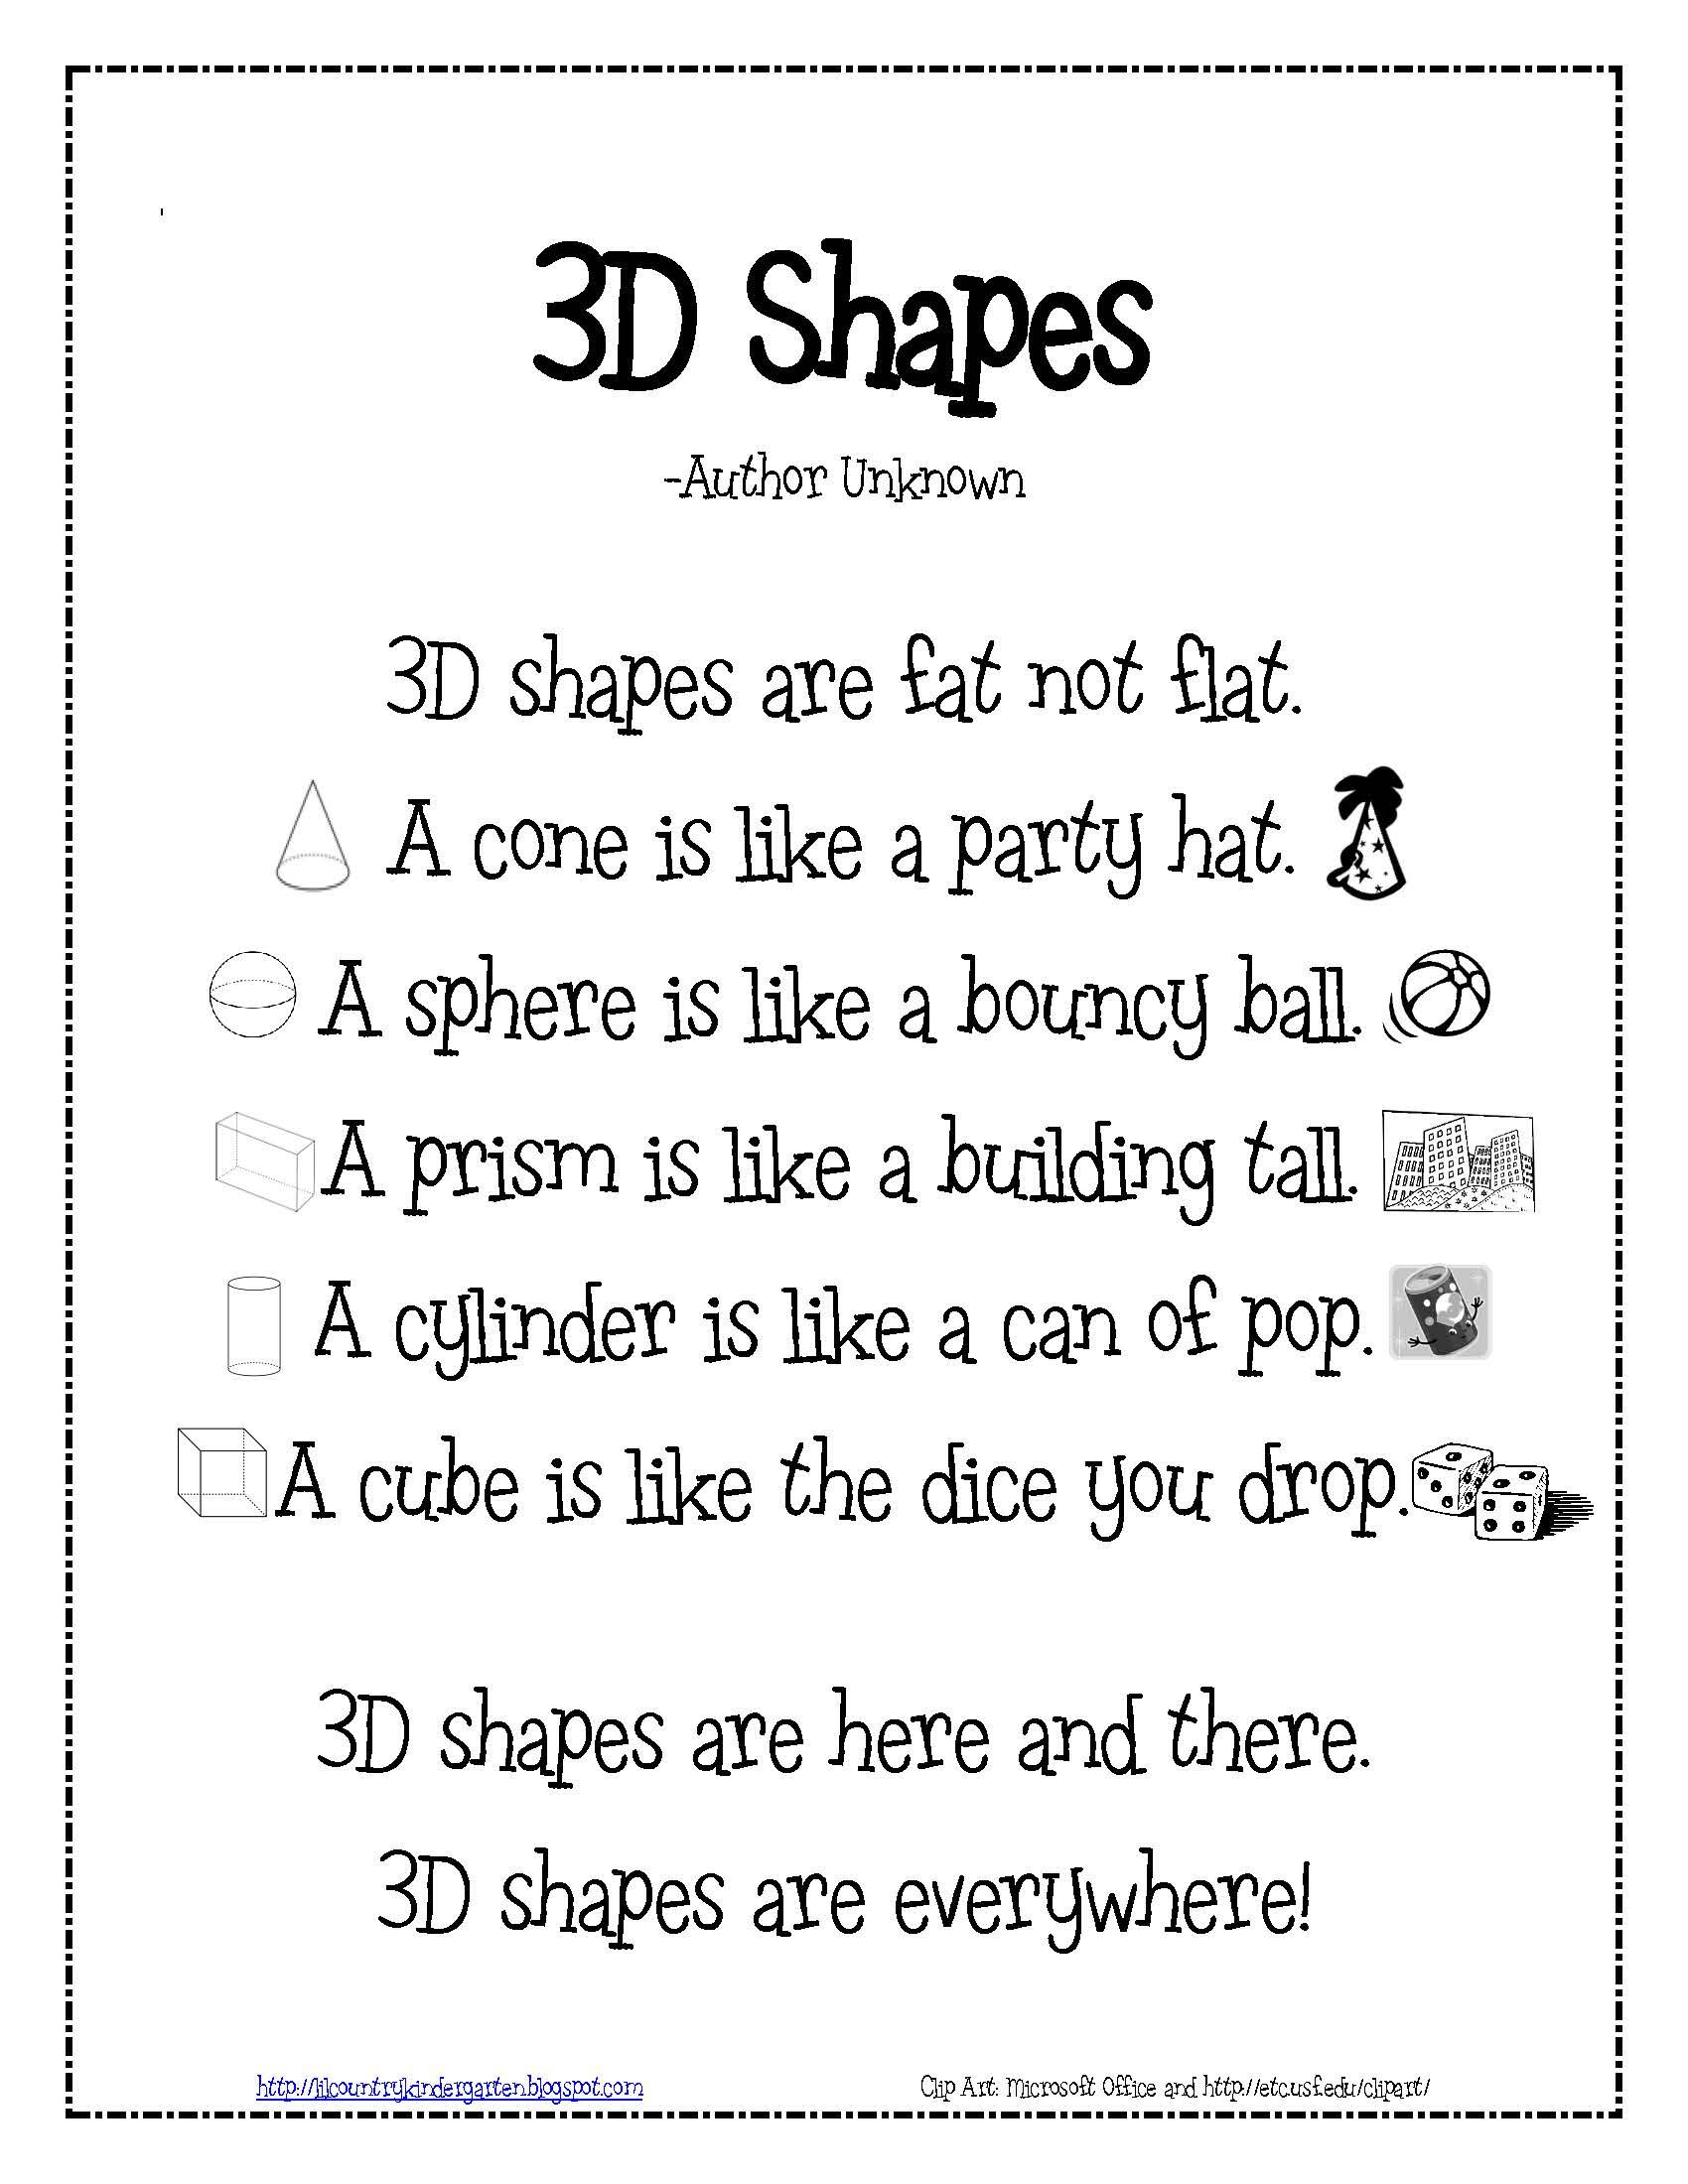 3D Shapes Poem for teaching math to little ones